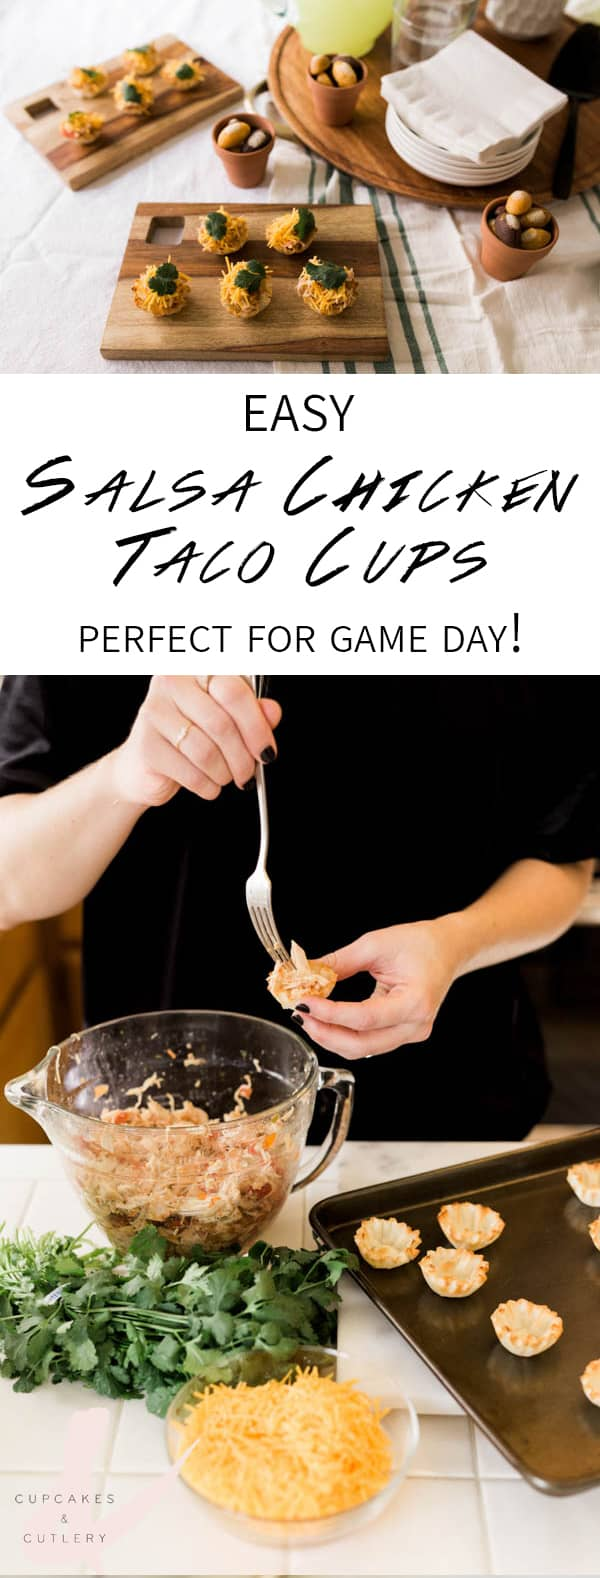 How to make easy Salsa Chicken Taco Cups for your game day appetizer. These are perfect for your football party. AD #chicken #cupcakesandcutlery #gameday #appetizer #snack